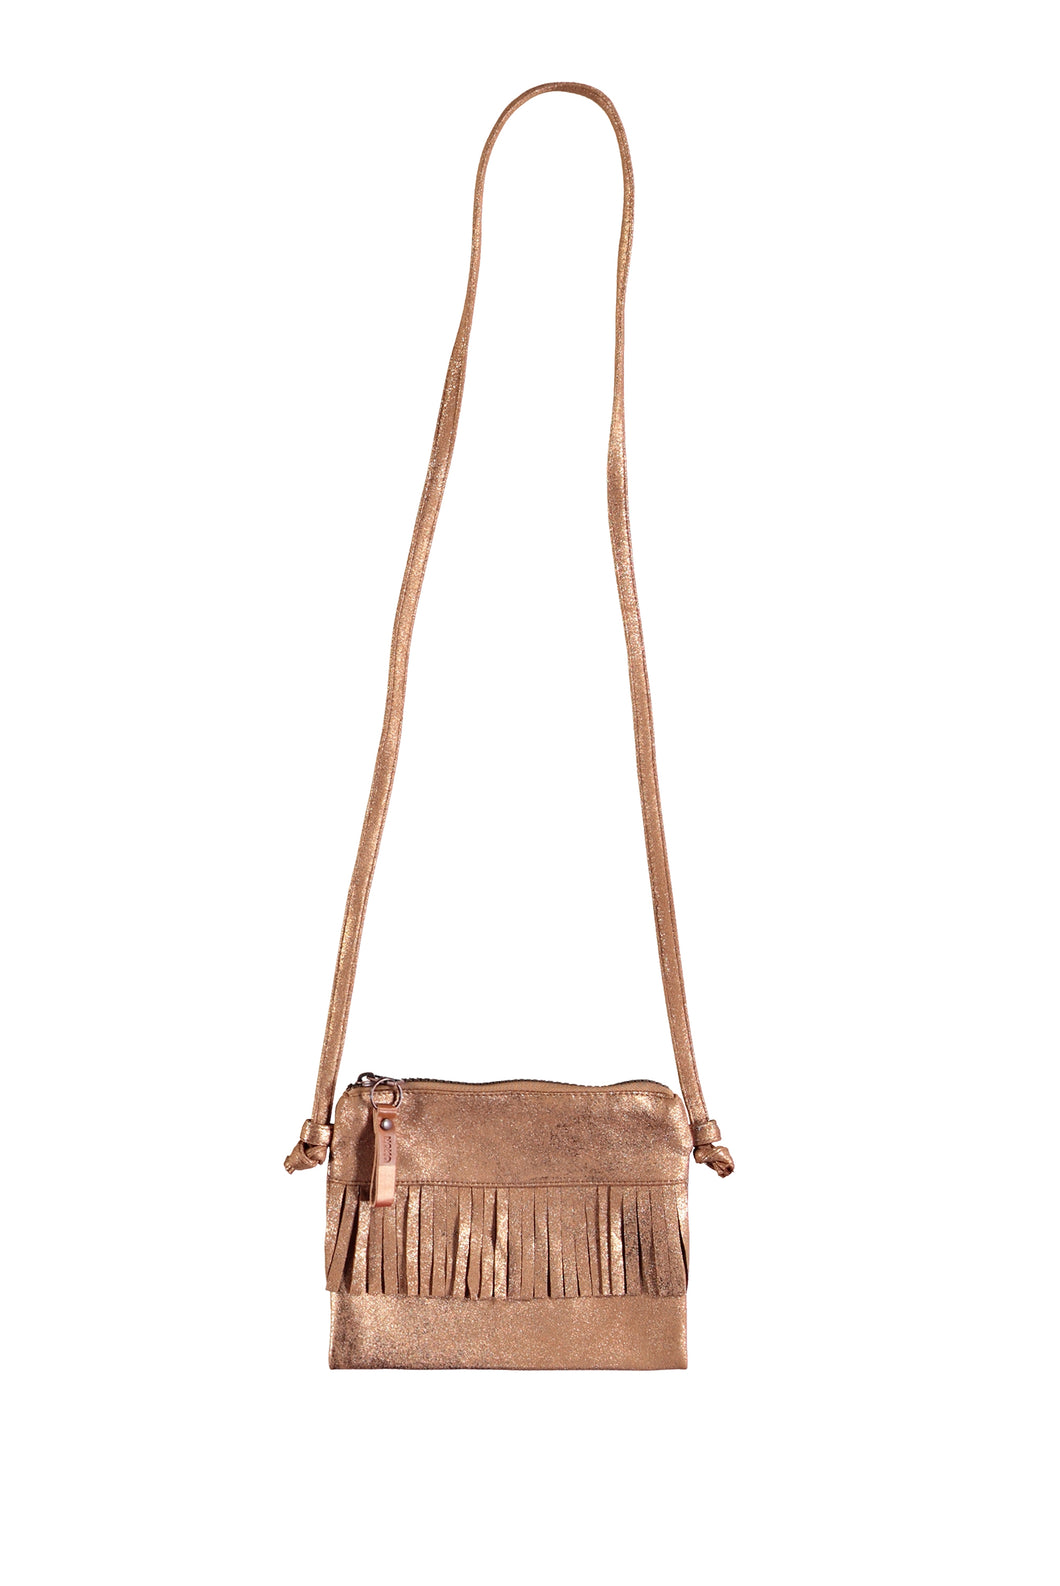 NONO BAG WITH FRINGES CINNAMON